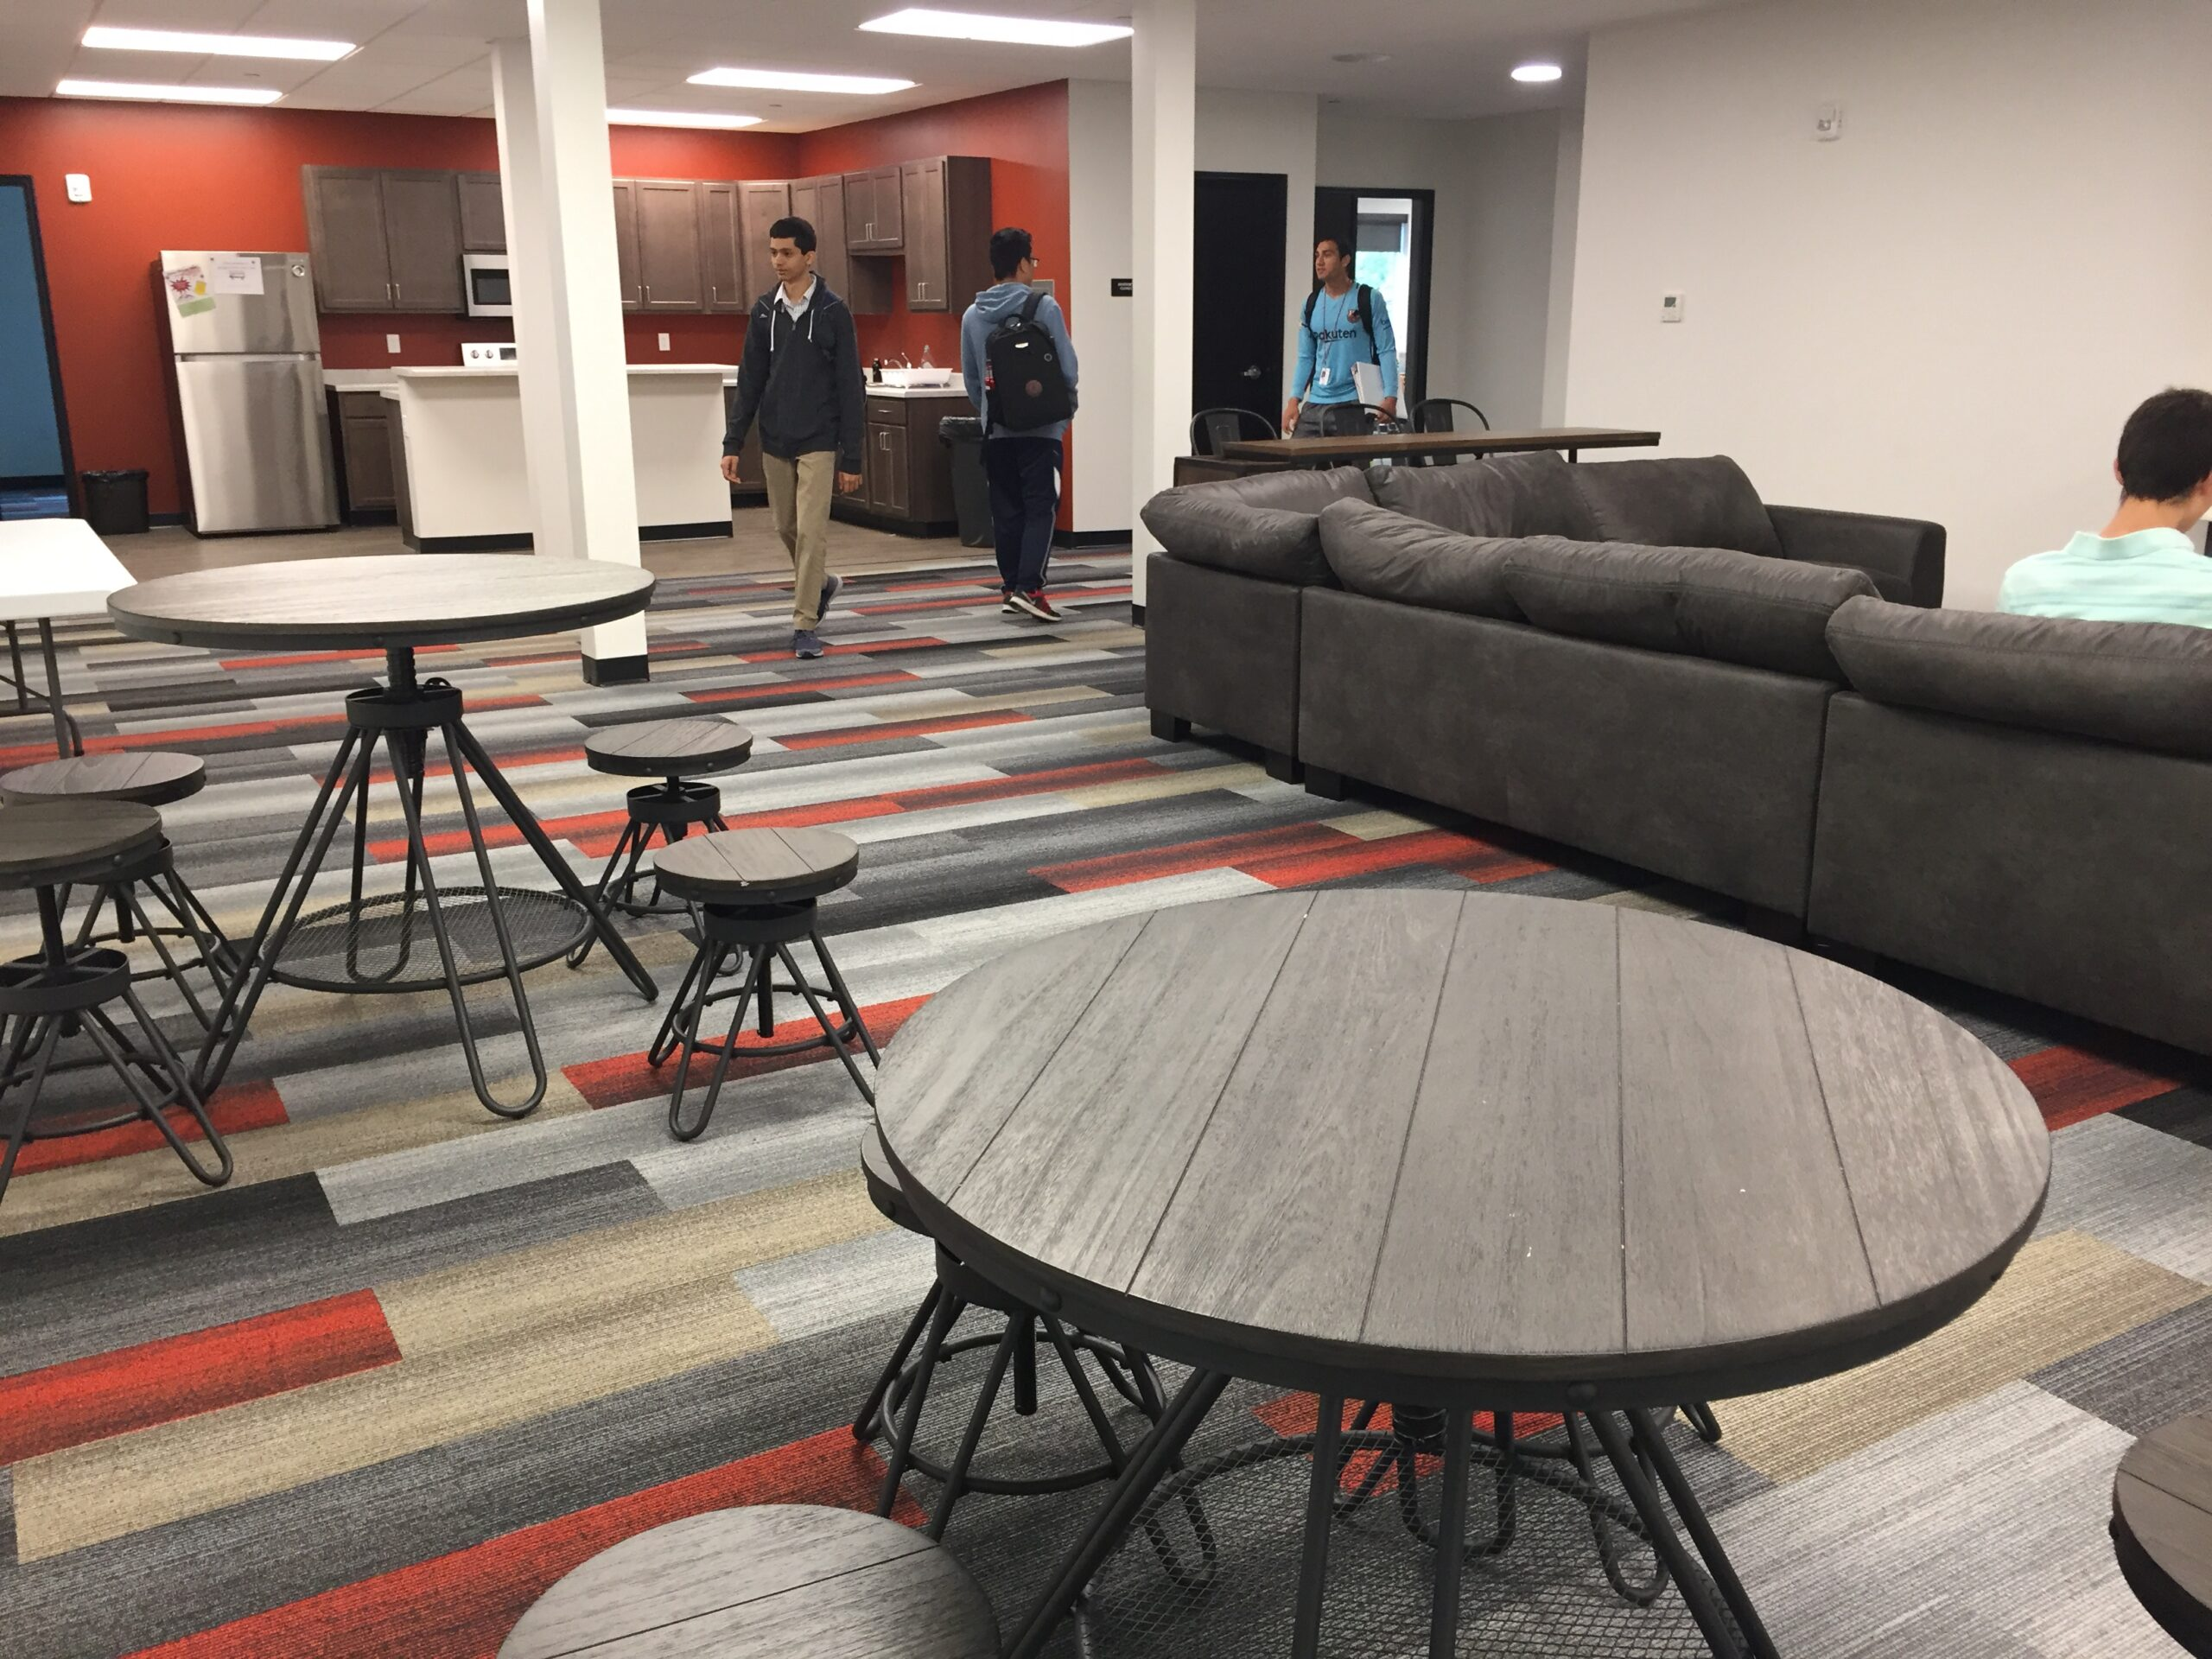 Student commons in the STEAM center